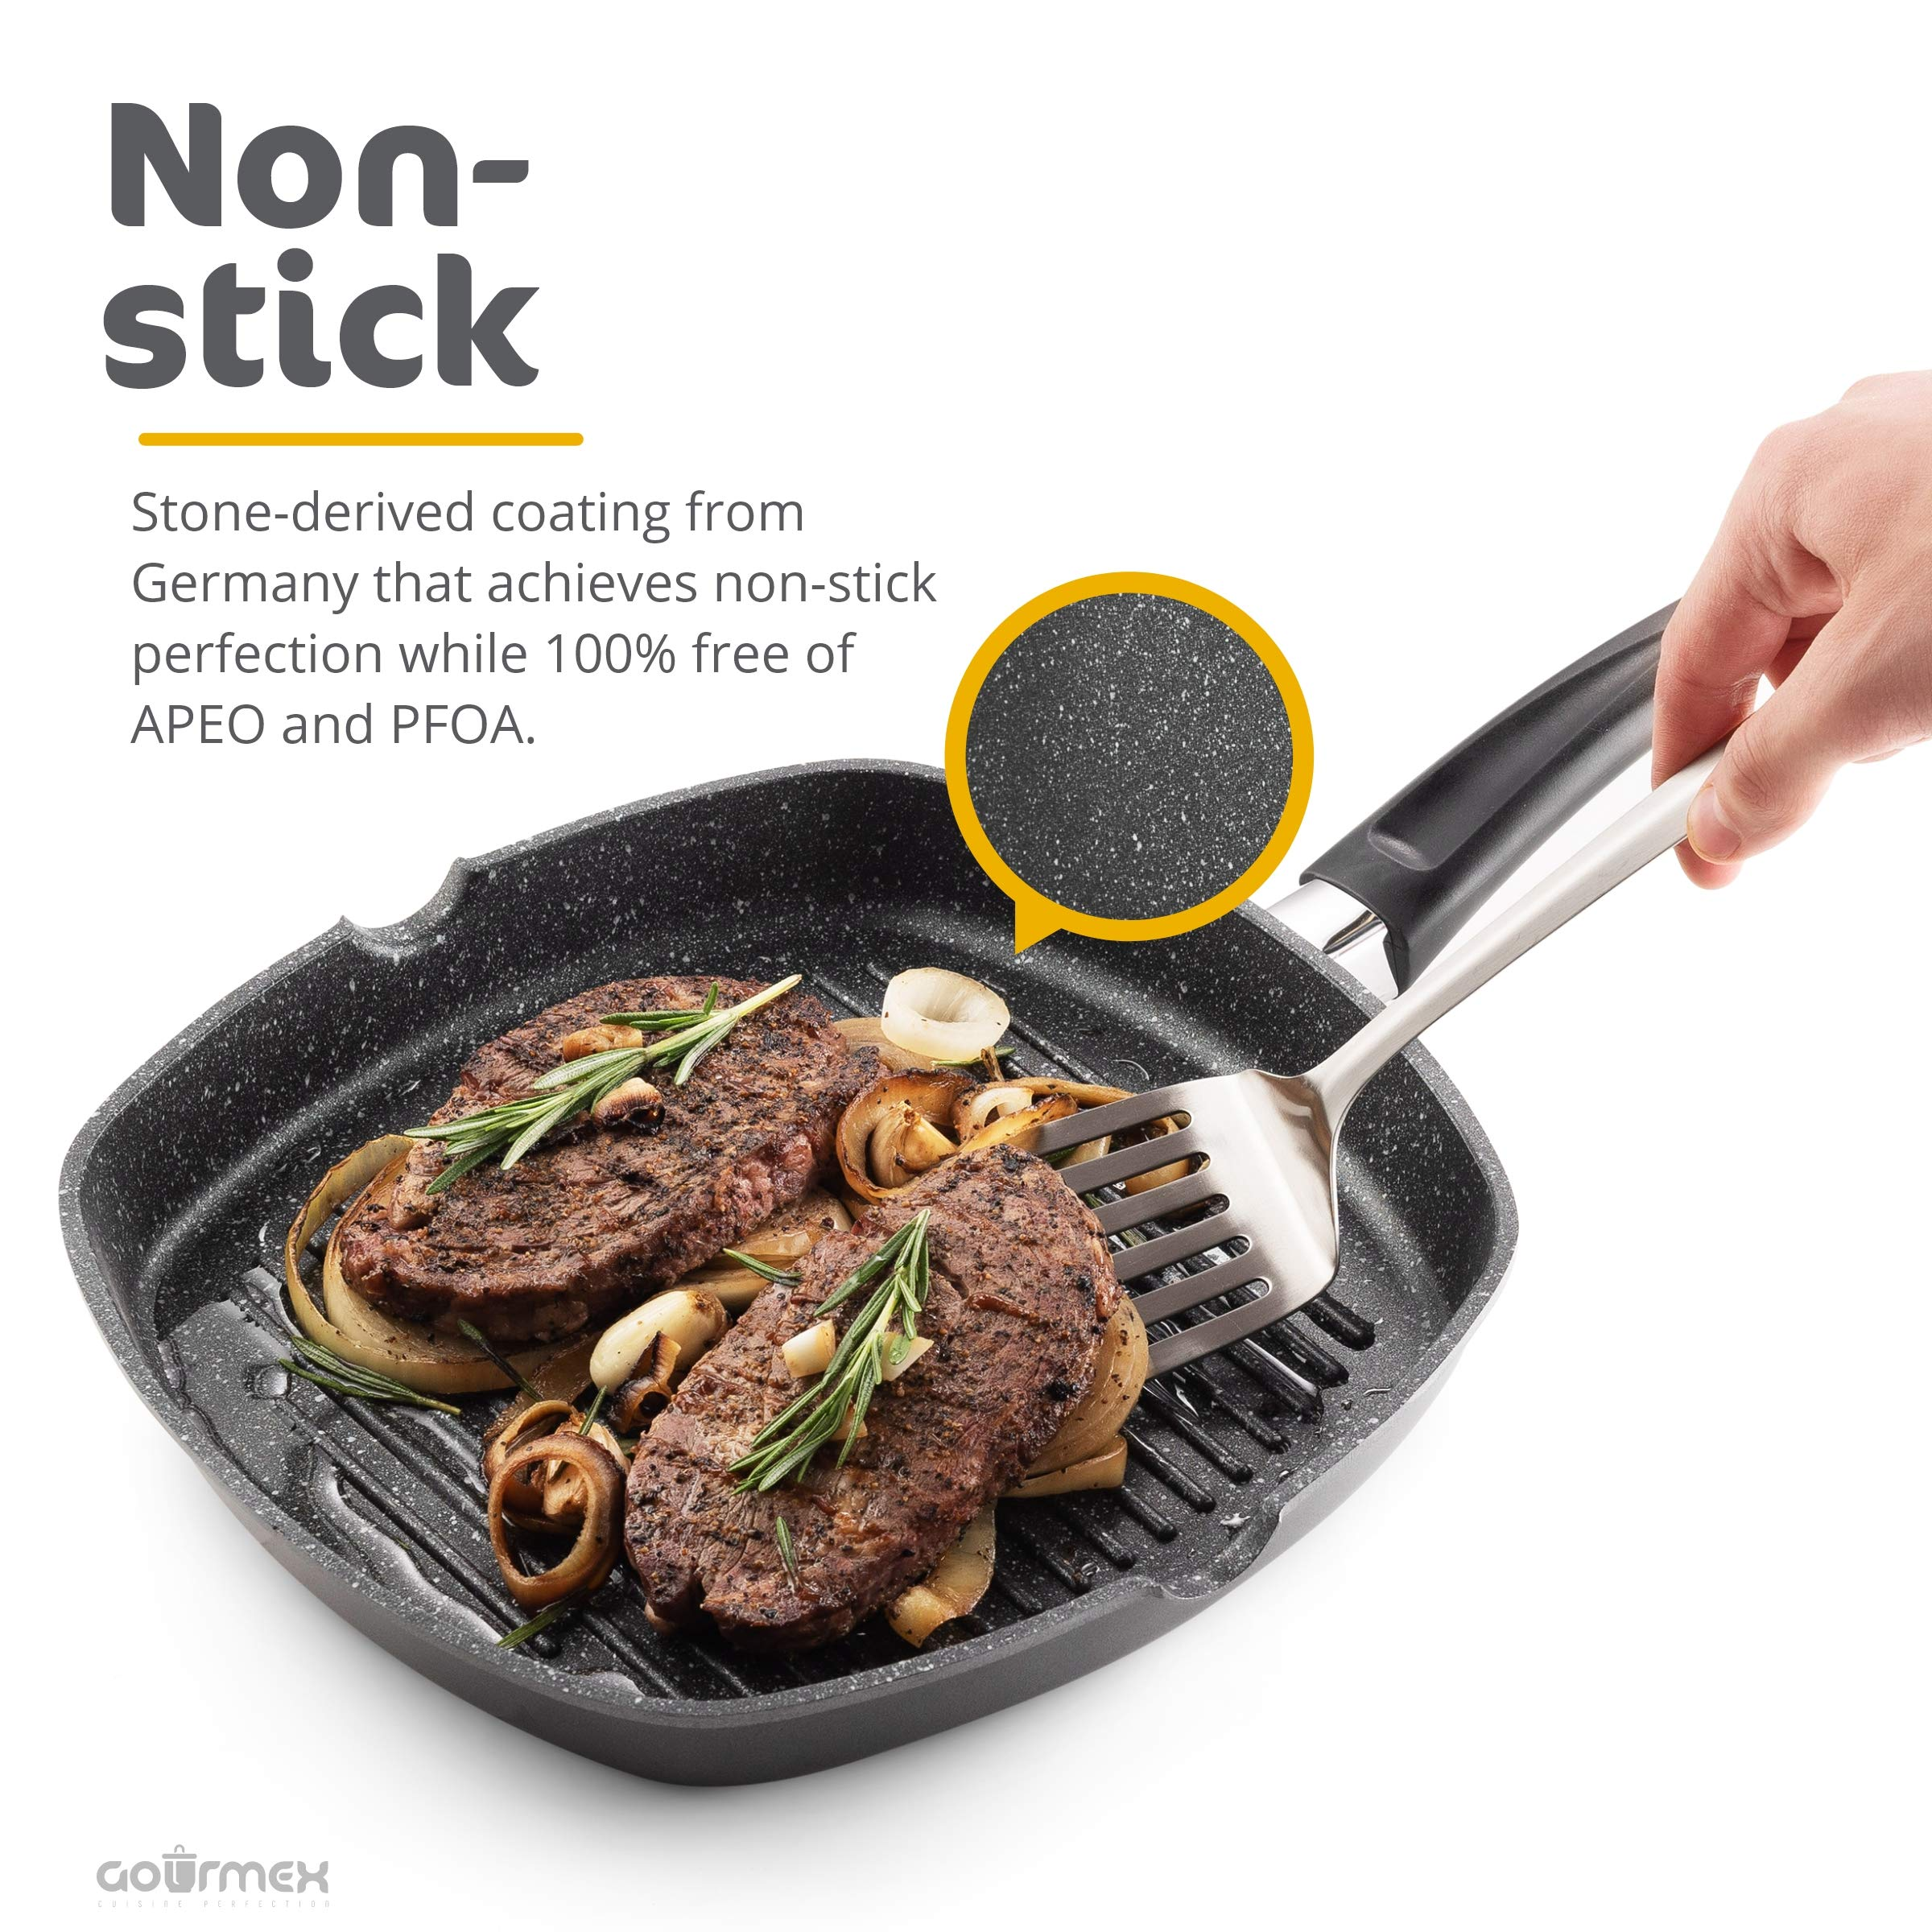 GOURMEX Toughpan Induction Grill Pan, Black, With PFOA Free Nonstick Coating | Great Skillet for Meat, Fish and Vegetables | Perfect for All Heat Sources | Dishwasher Safe Cookware (11'' Grill Pan) by GOURMEX (Image #5)